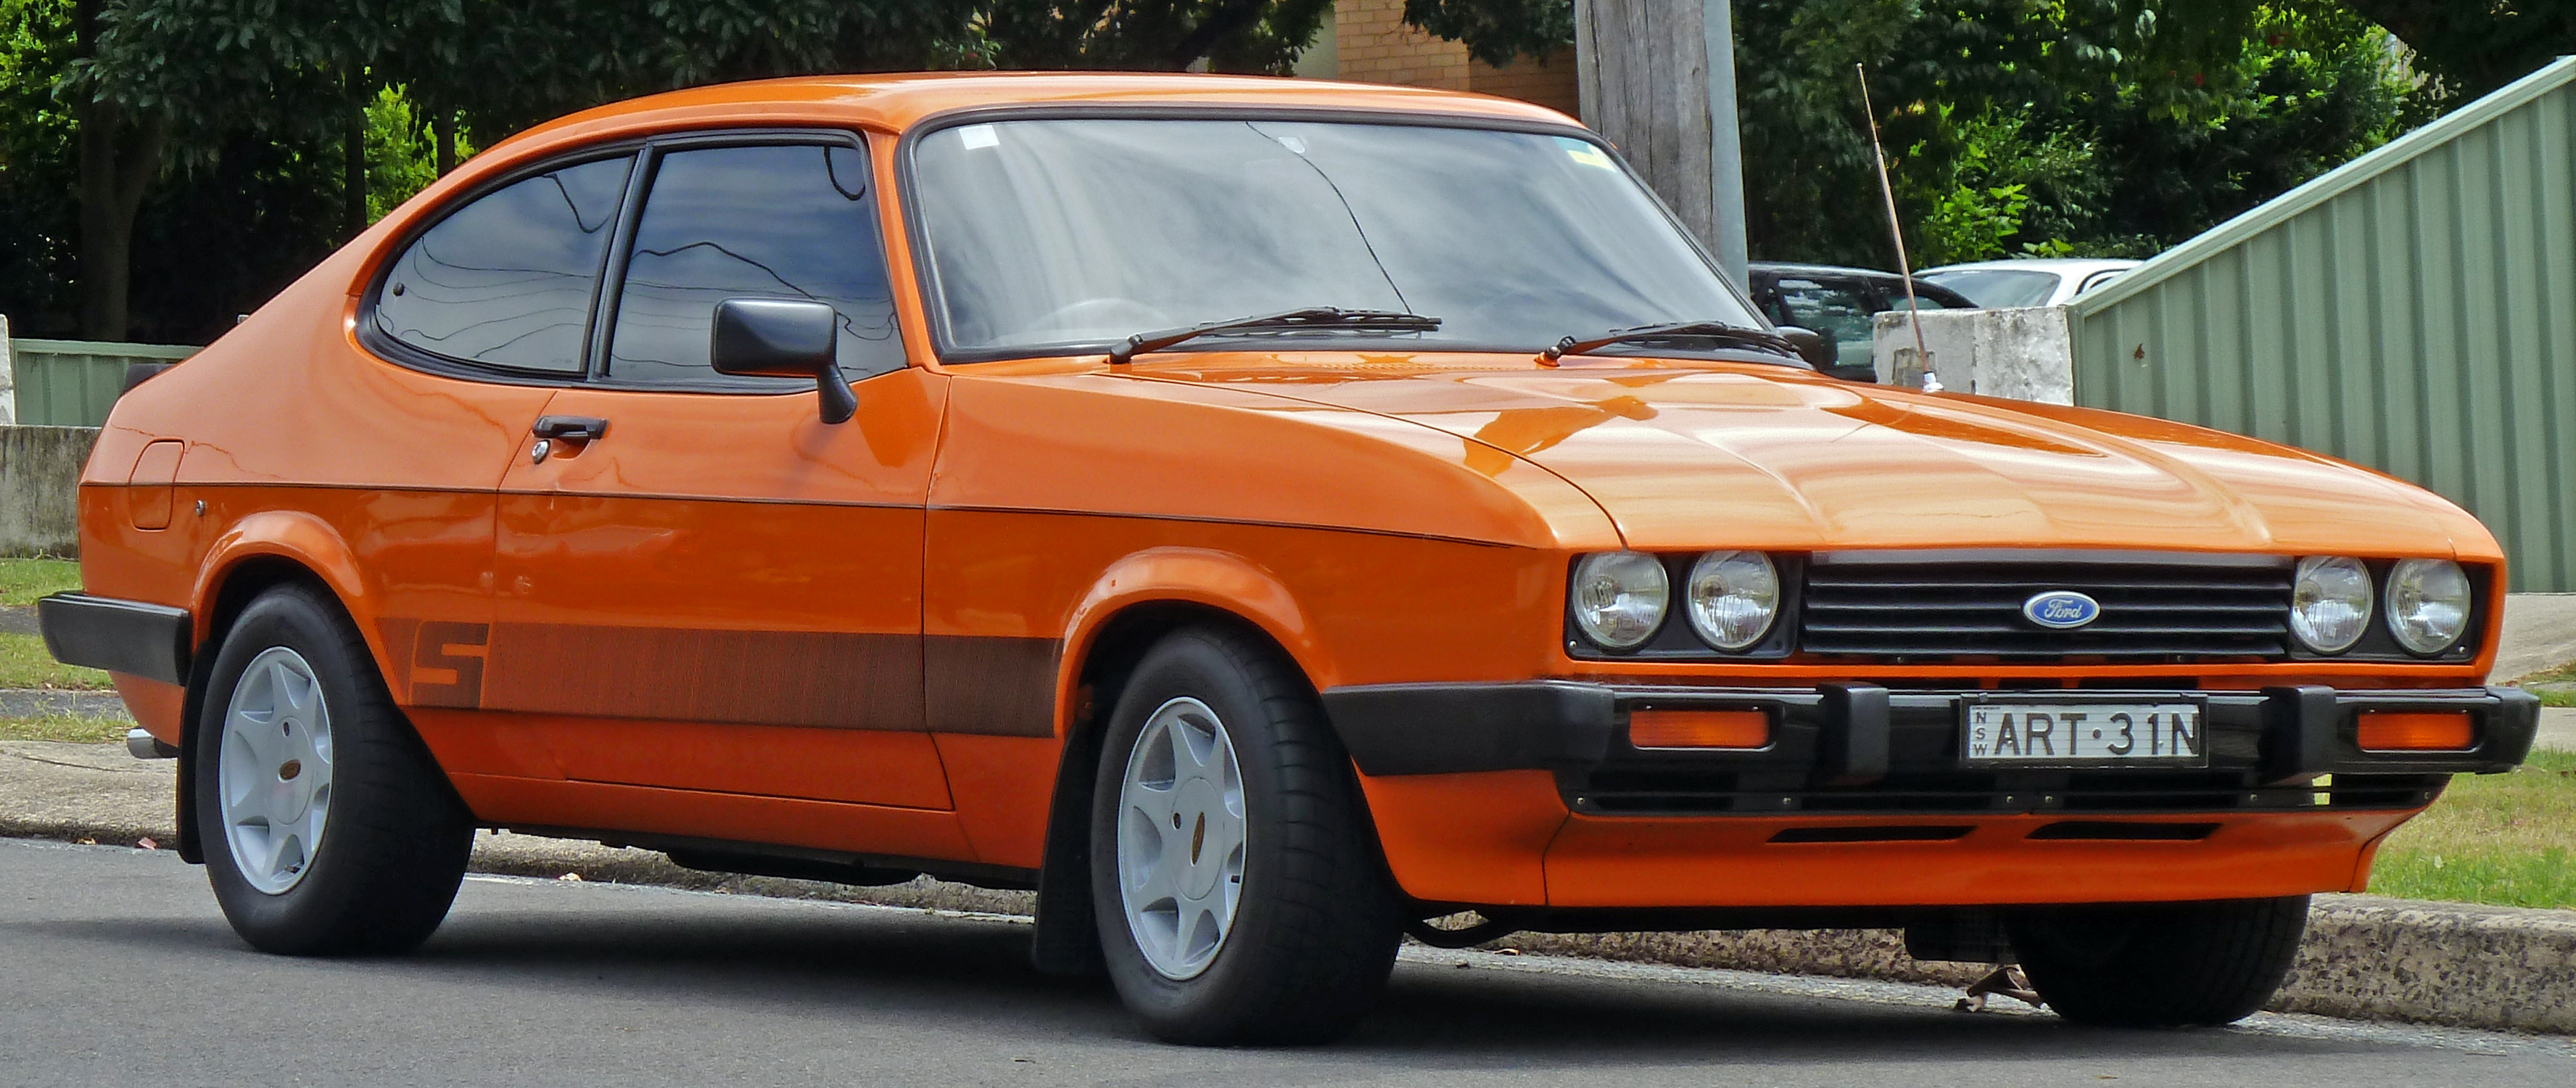 1977-1986_​Ford_Capri​_S_coupe_(​2010-12-28​)